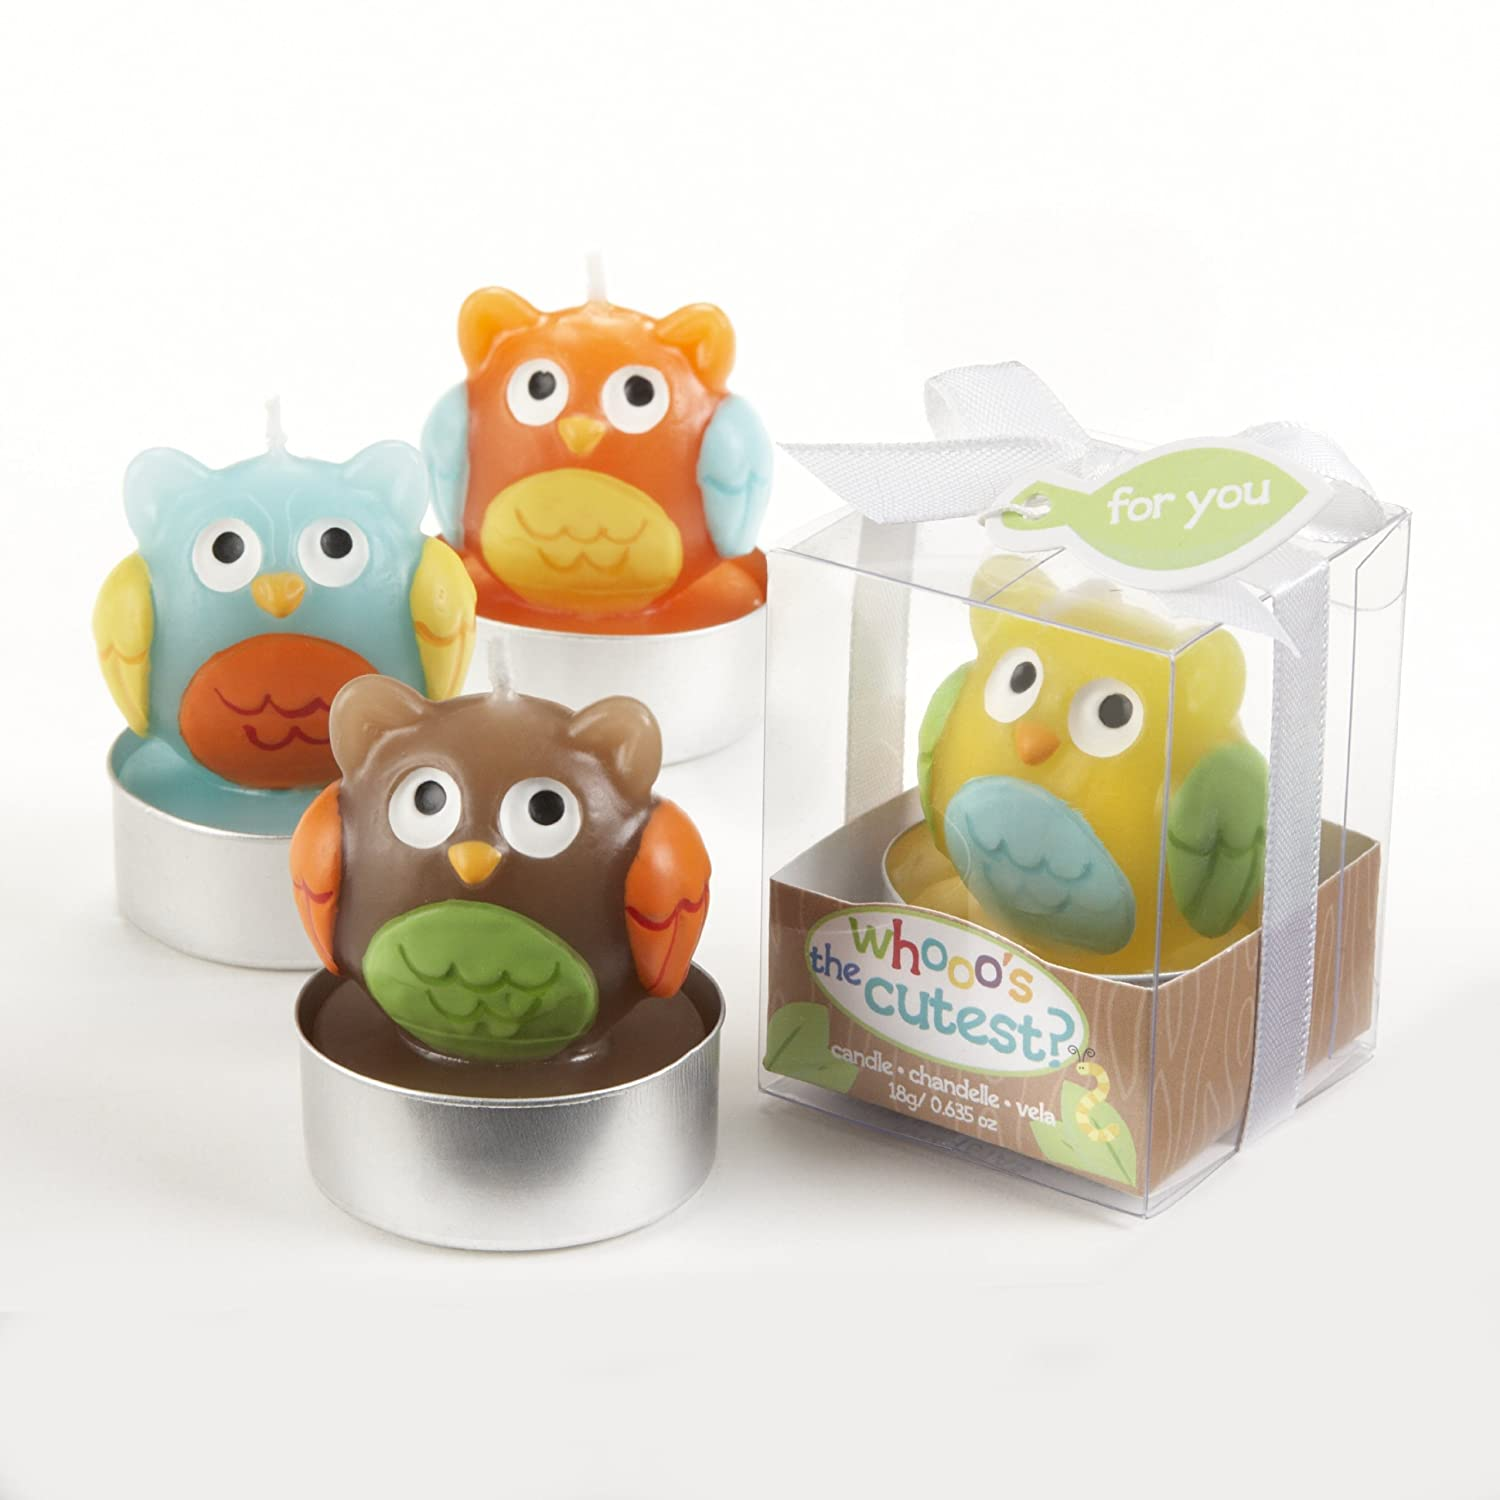 Amazon Kate Aspen Set of 4 Assorted Candle Whooo s the